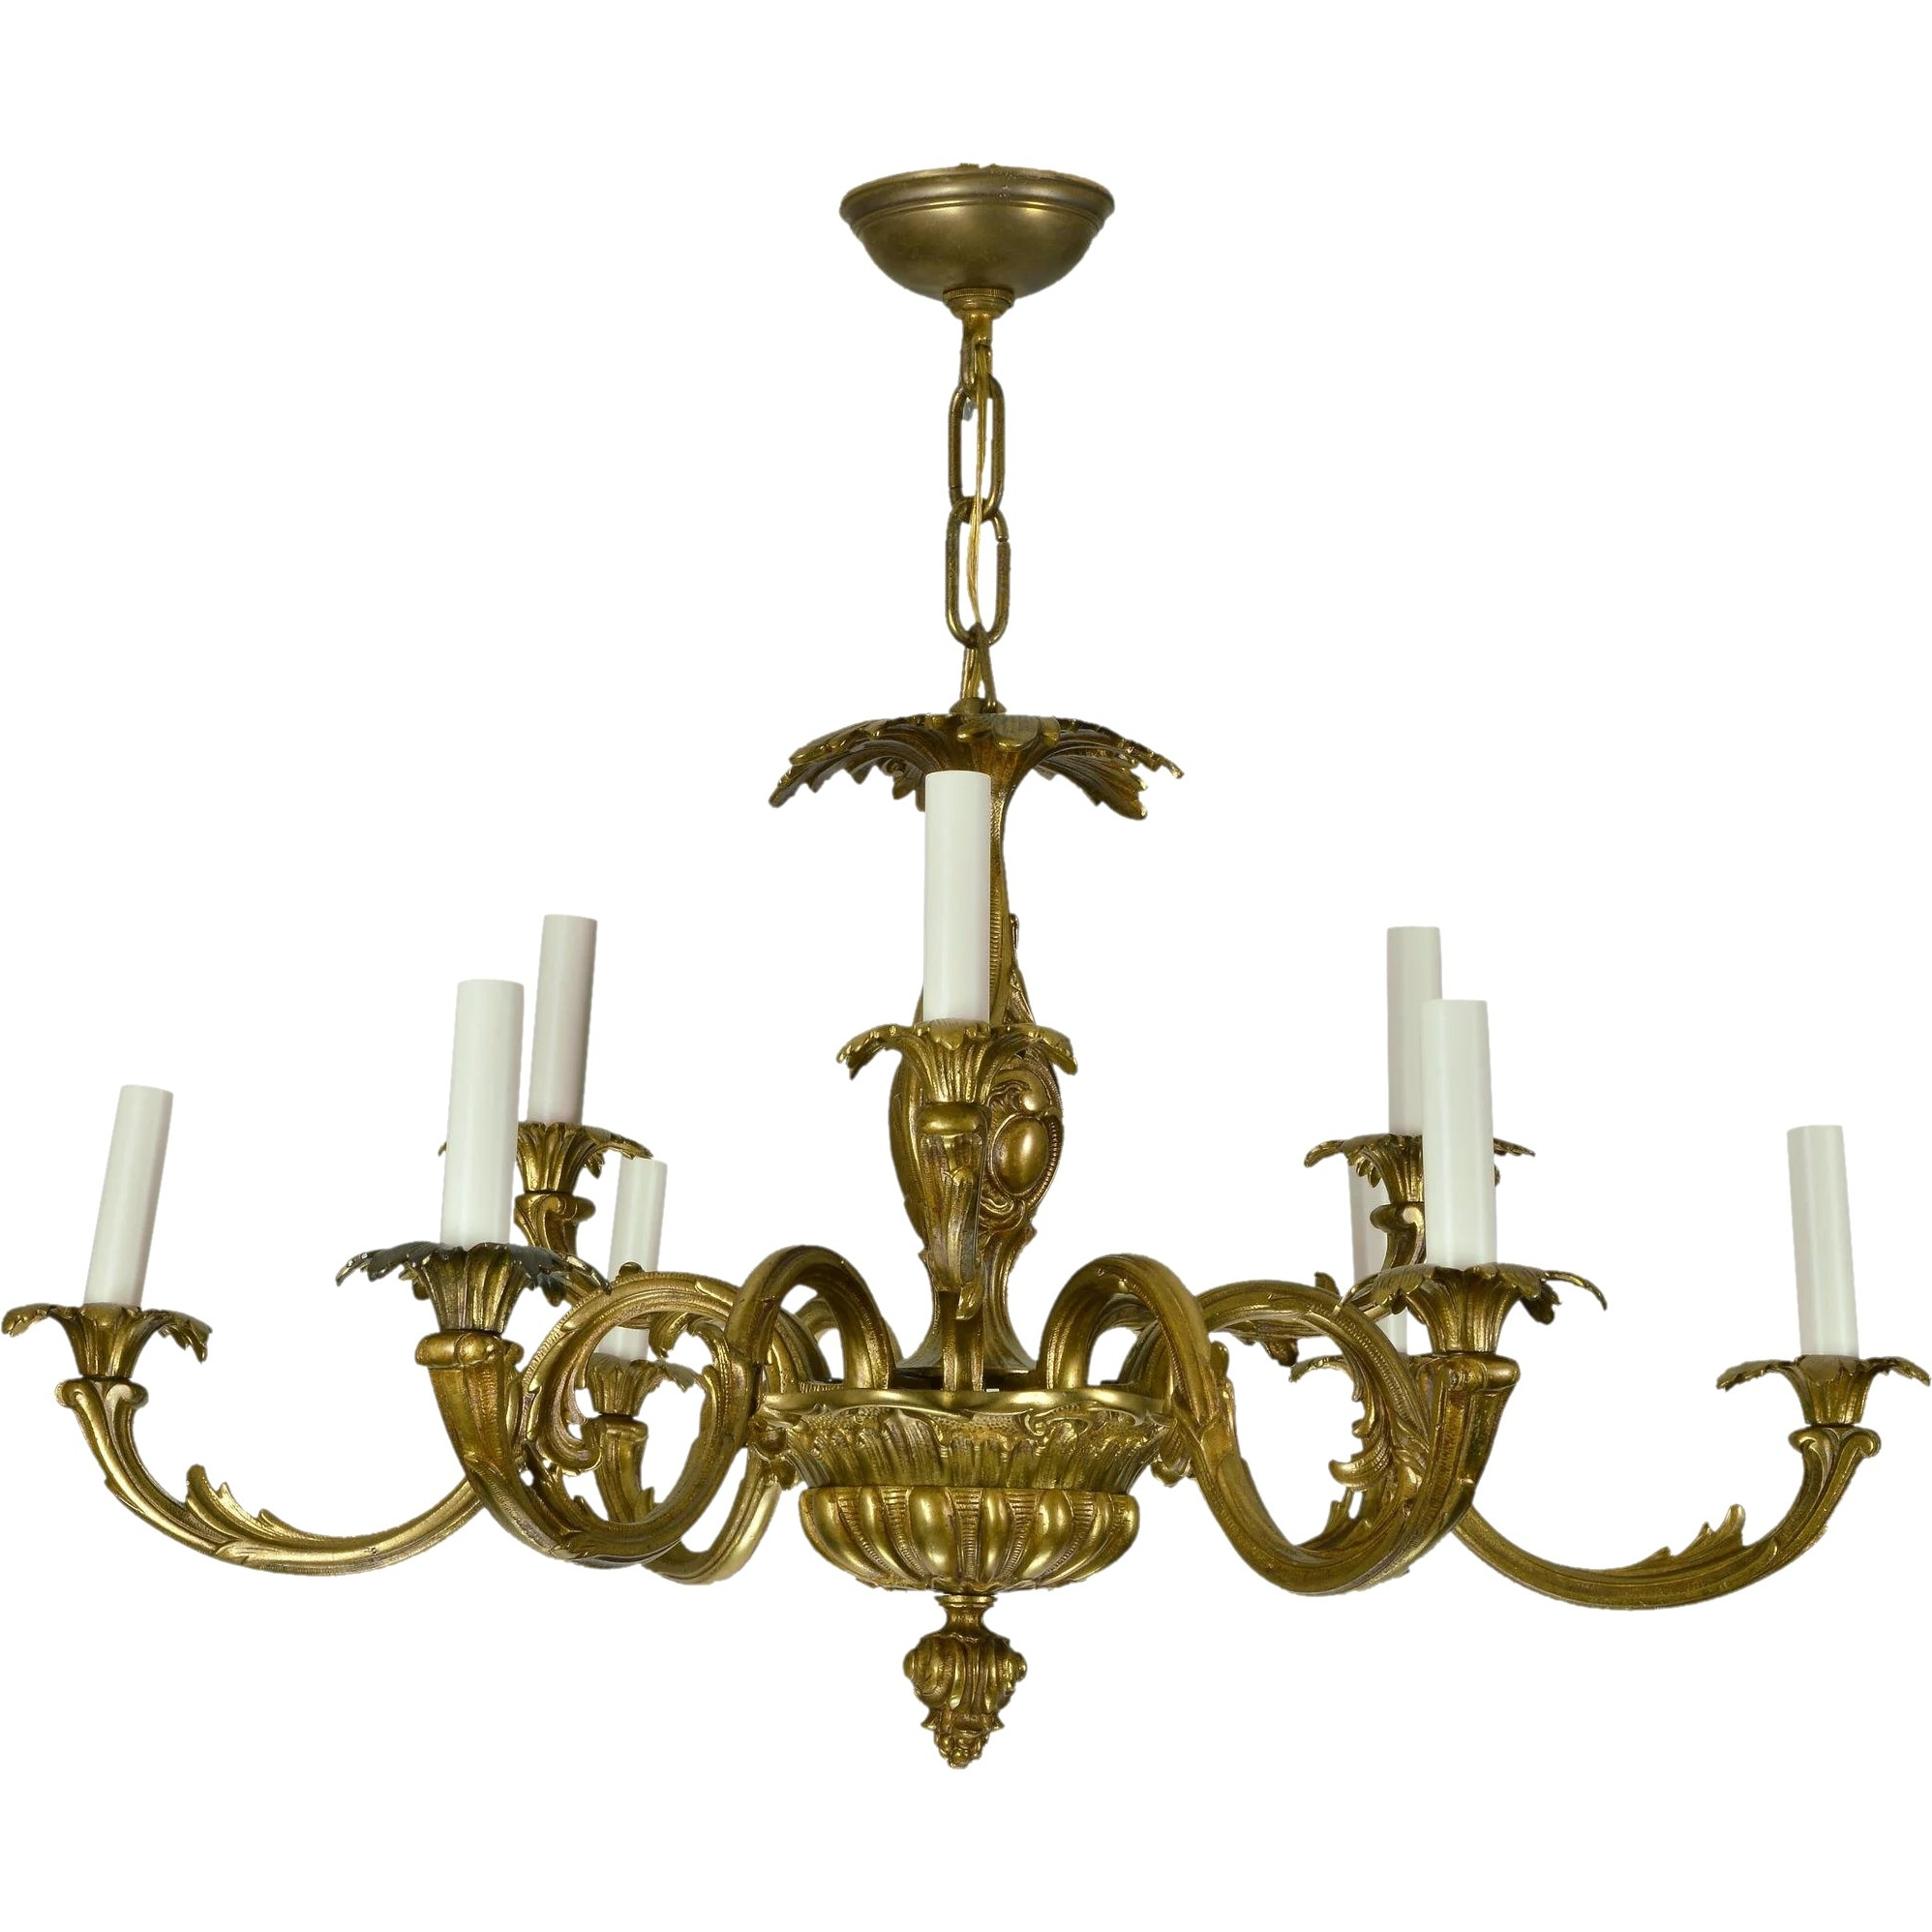 Baroque Chandelier With Regard To 2018 Vintage Brass French Baroque Chandelier : The Old Light Warehouse (View 11 of 15)